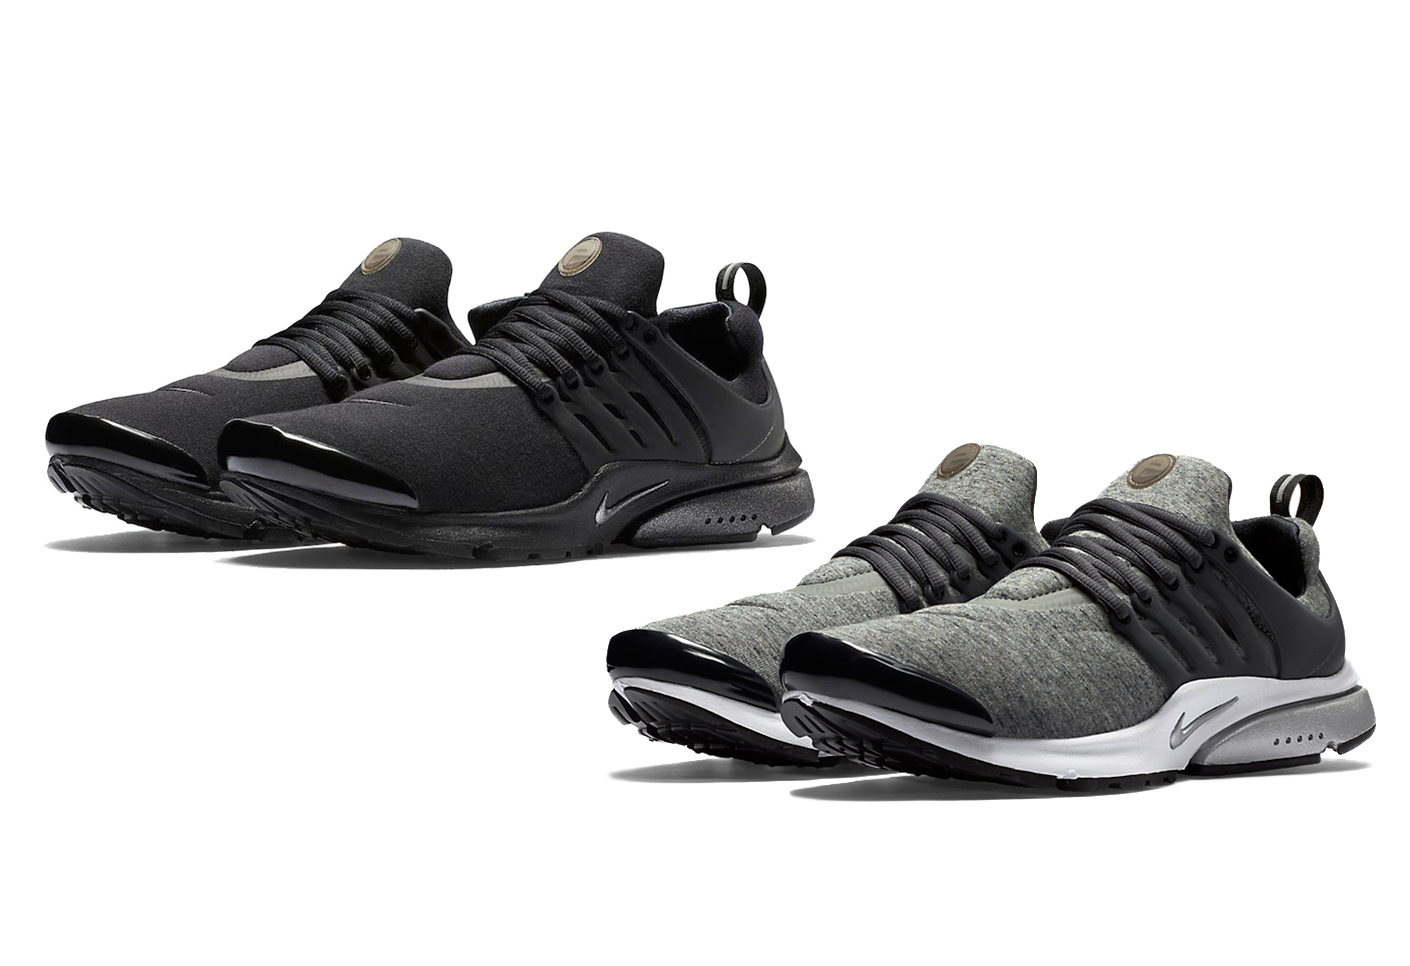 Nike Air Presto 'Tech Pack' black copy